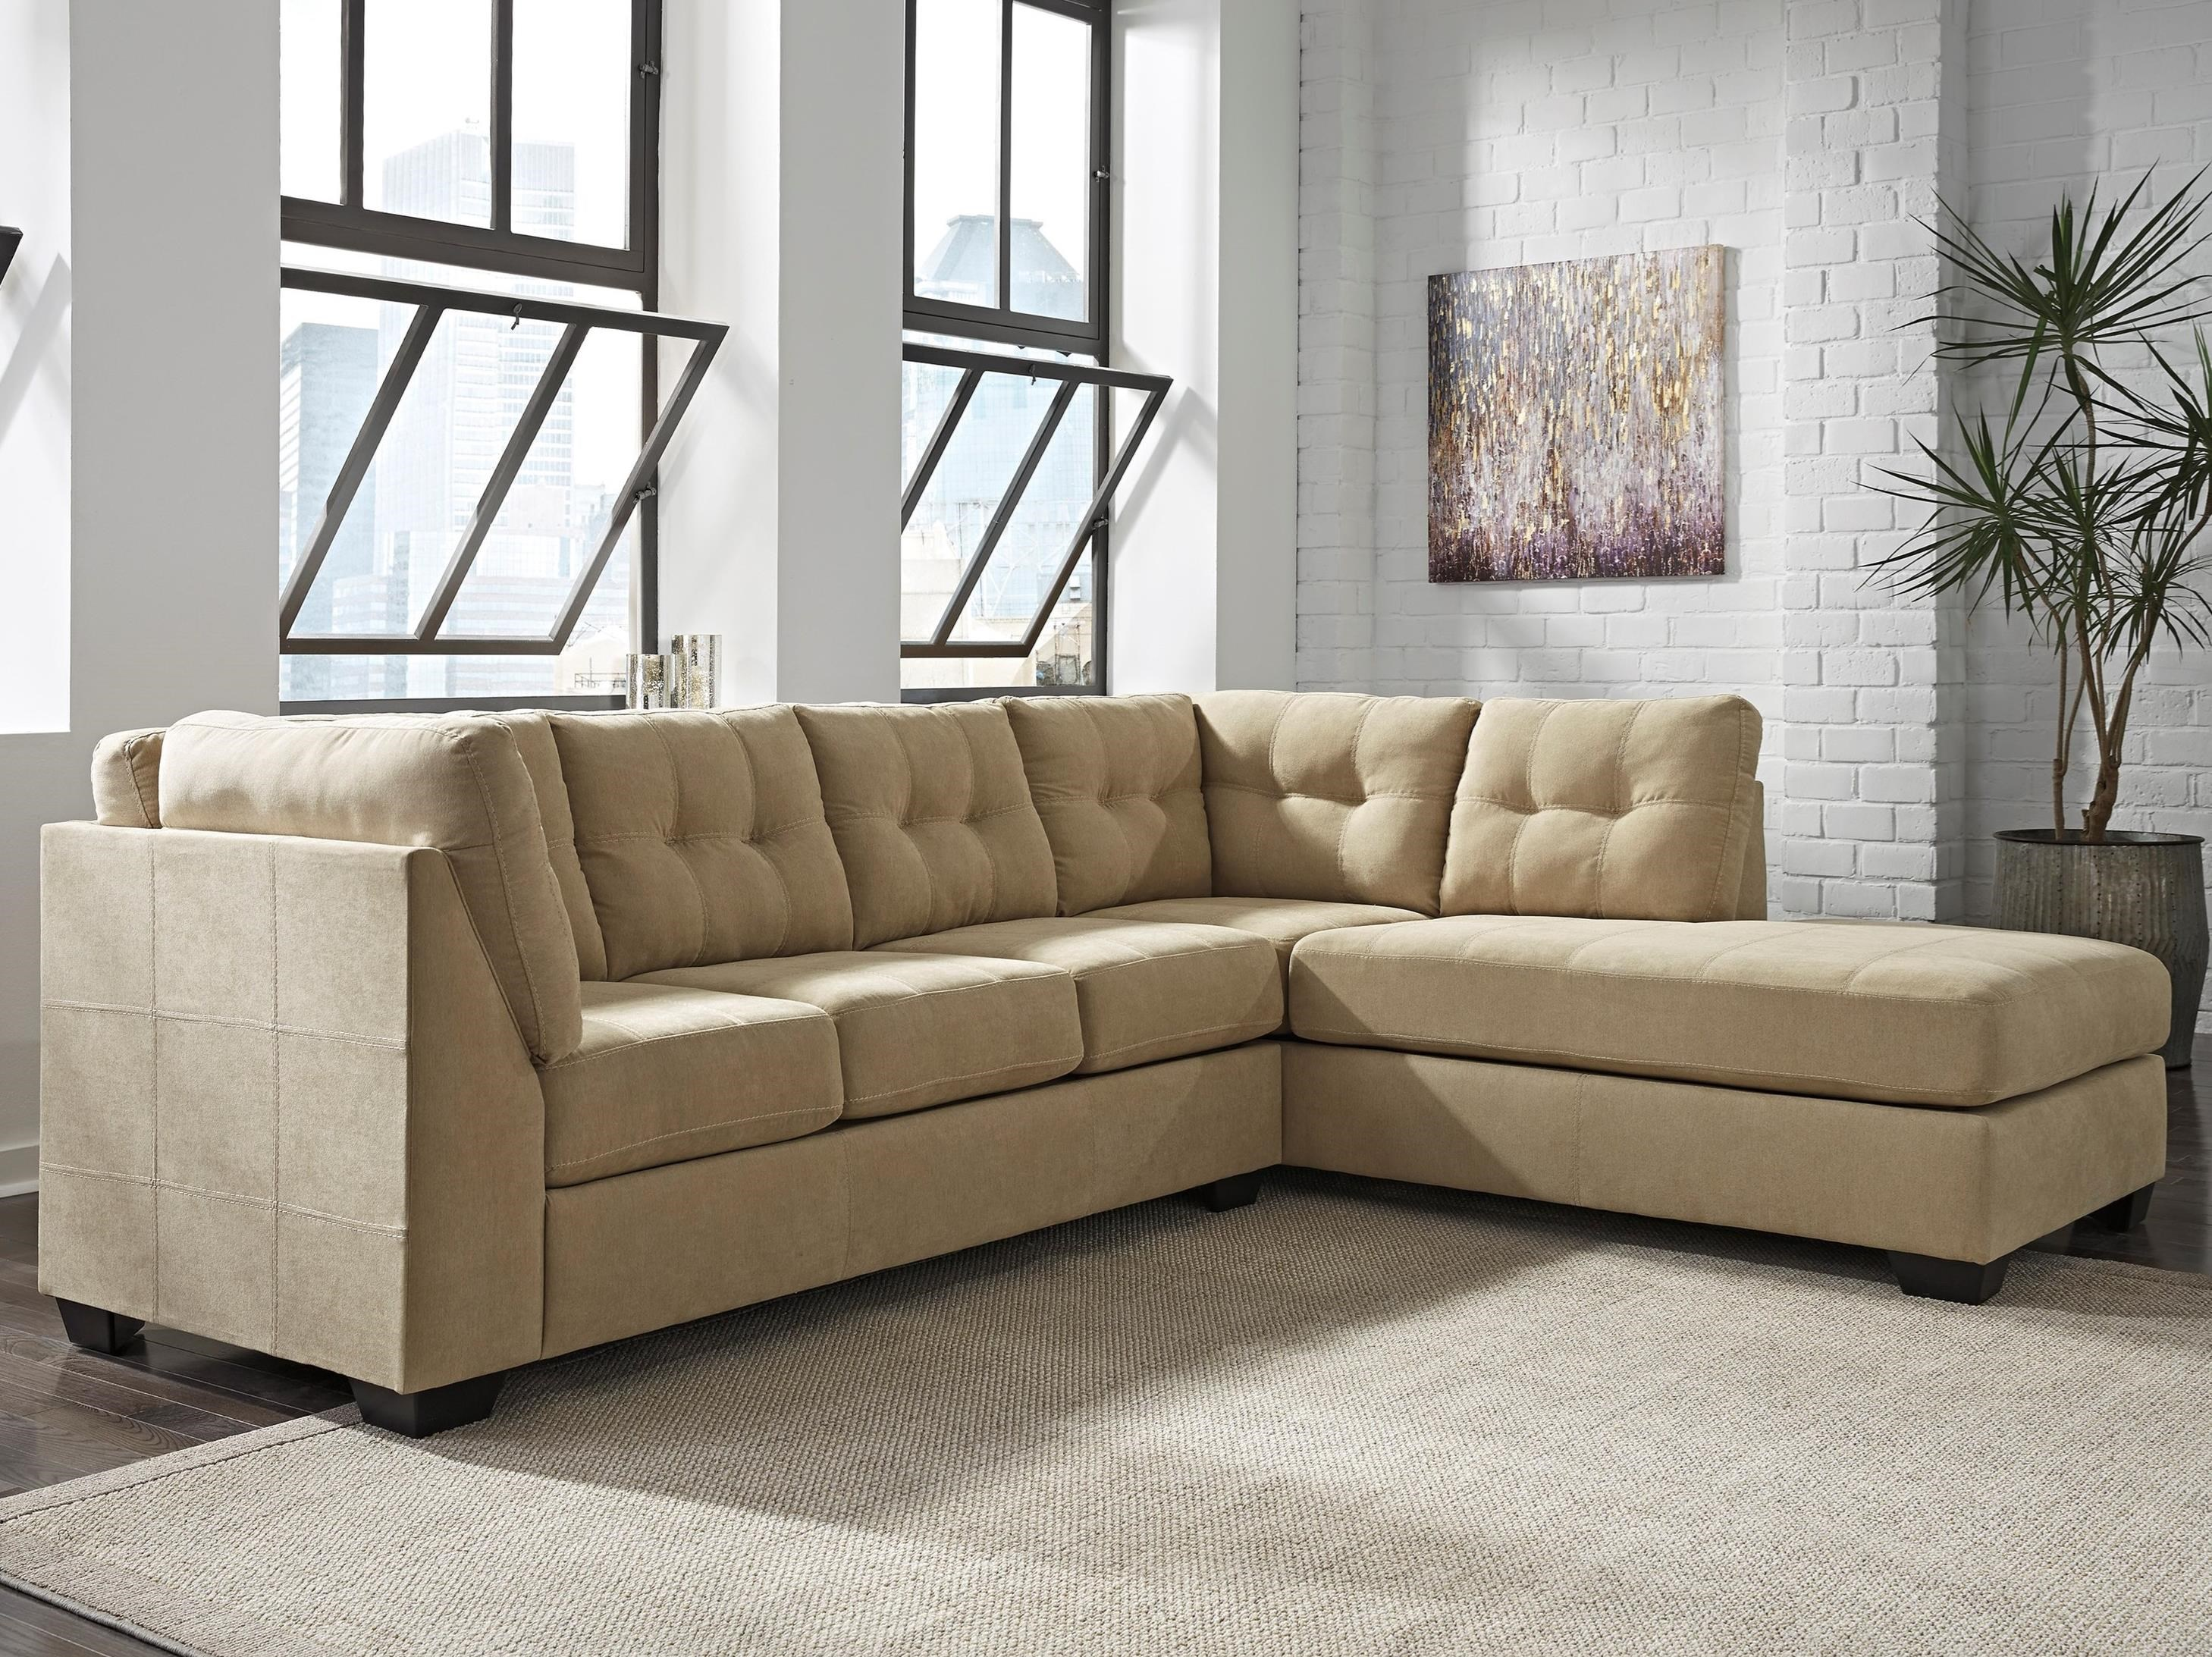 Benchcraft Maier Cocoa 2 Piece Sectional with Right Chaise